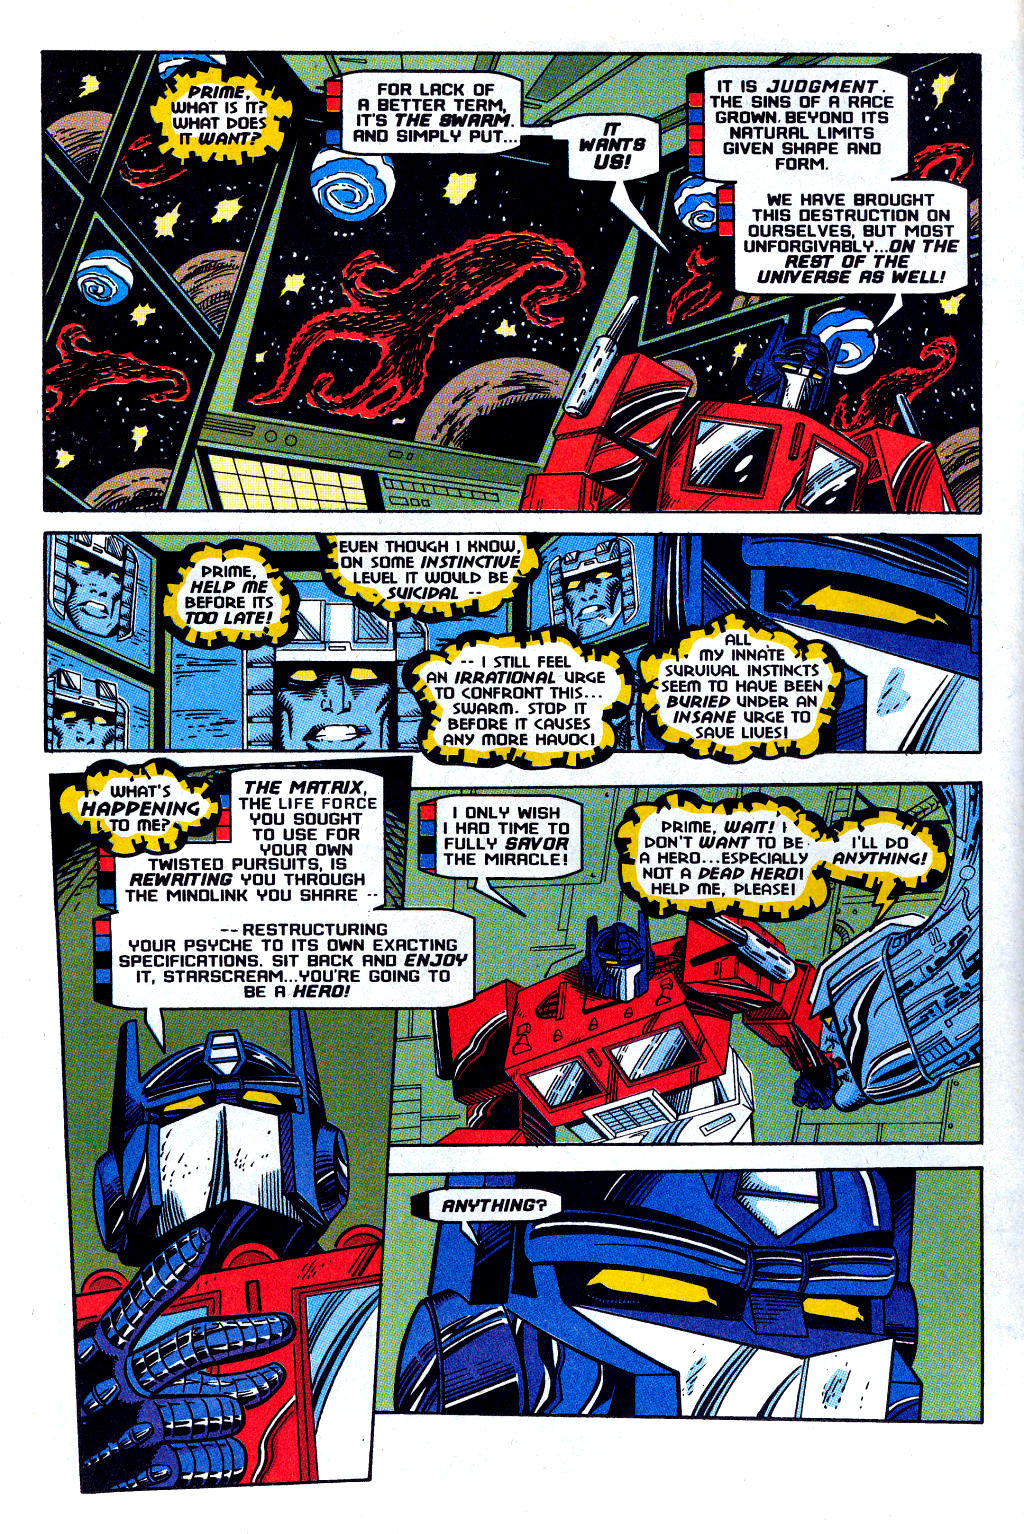 Read online Transformers: Generation 2 comic -  Issue #12 - 4